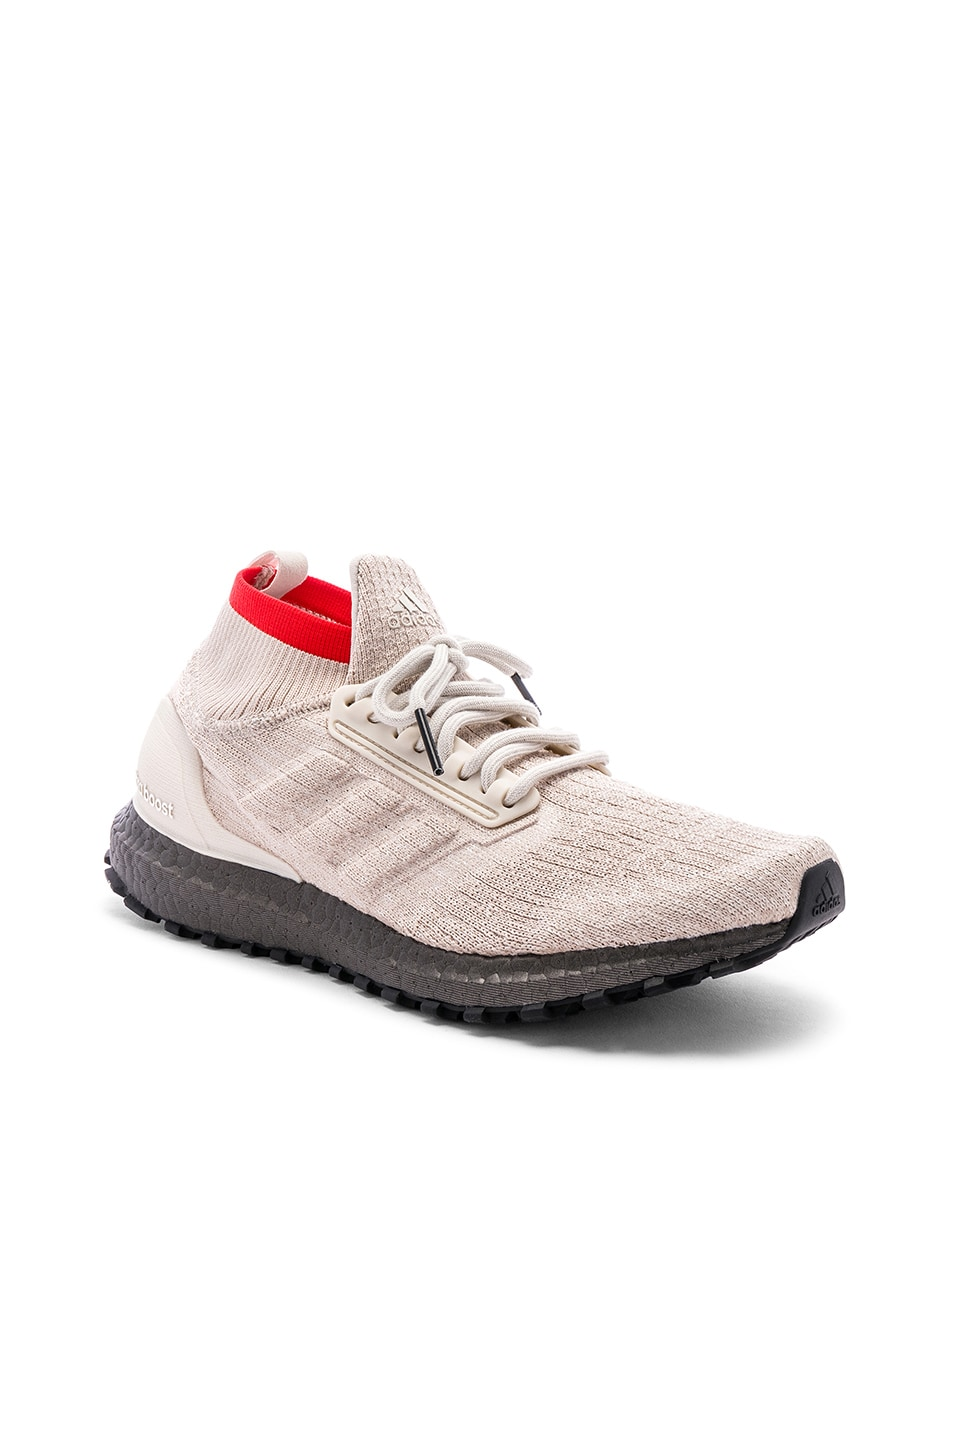 41a869cdccb0f Image 1 of adidas Originals UltraBoost All Terrain in Clear Brown   Clear  Brown   Black